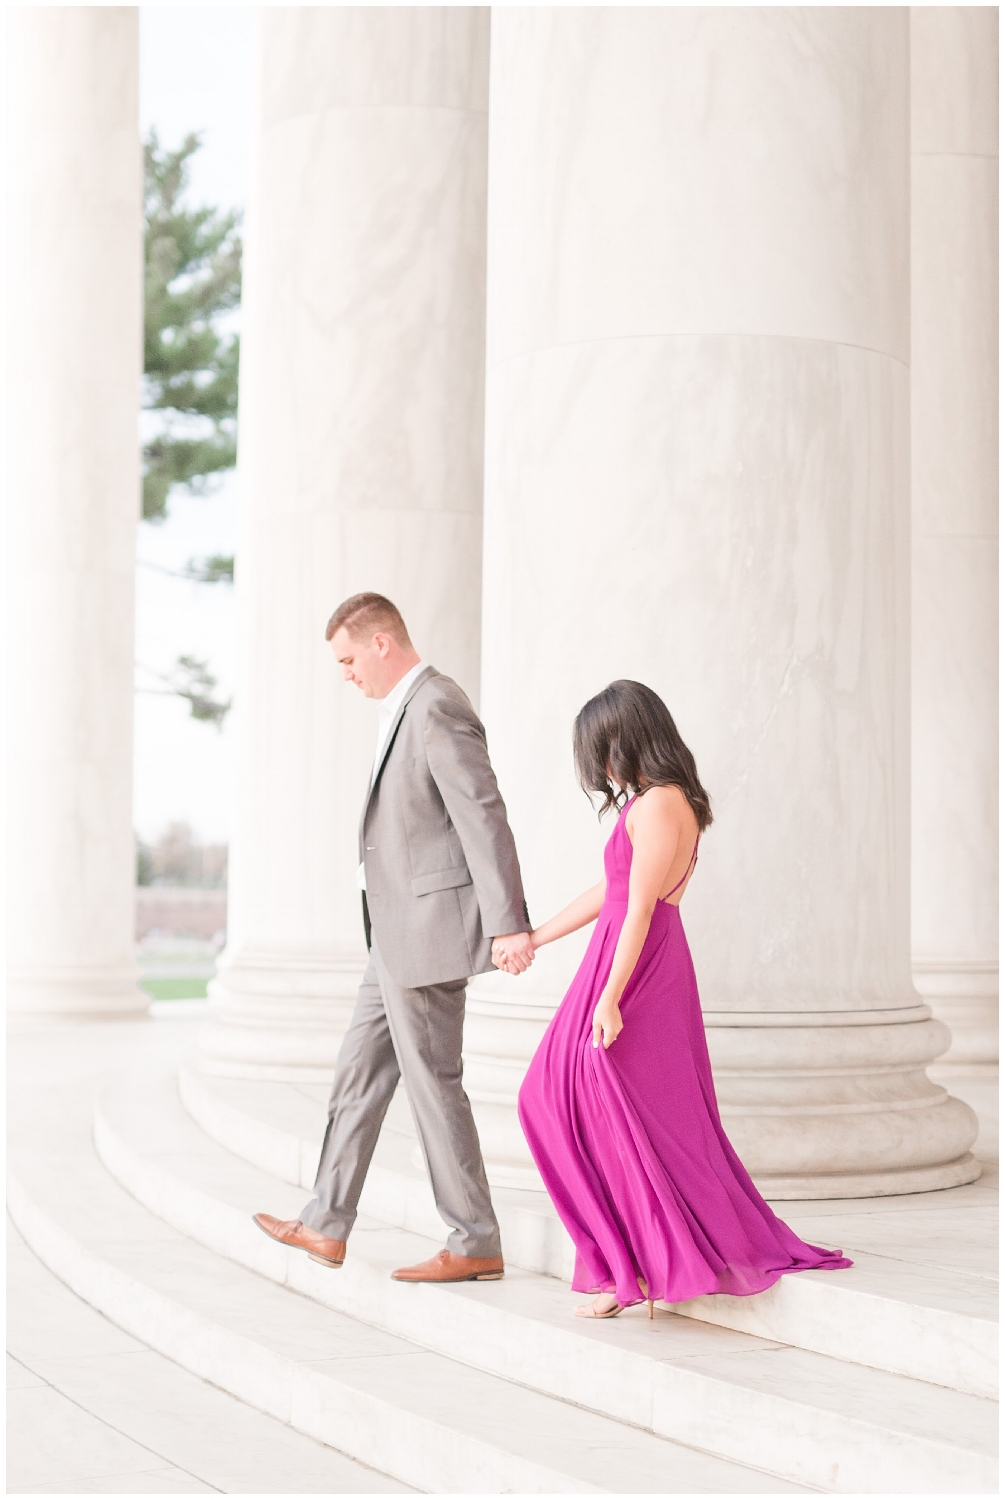 dc-northern-virginia-timeless-elegant-photojournalism-wedding-photographer-emily-alyssa-photo-2.jpg